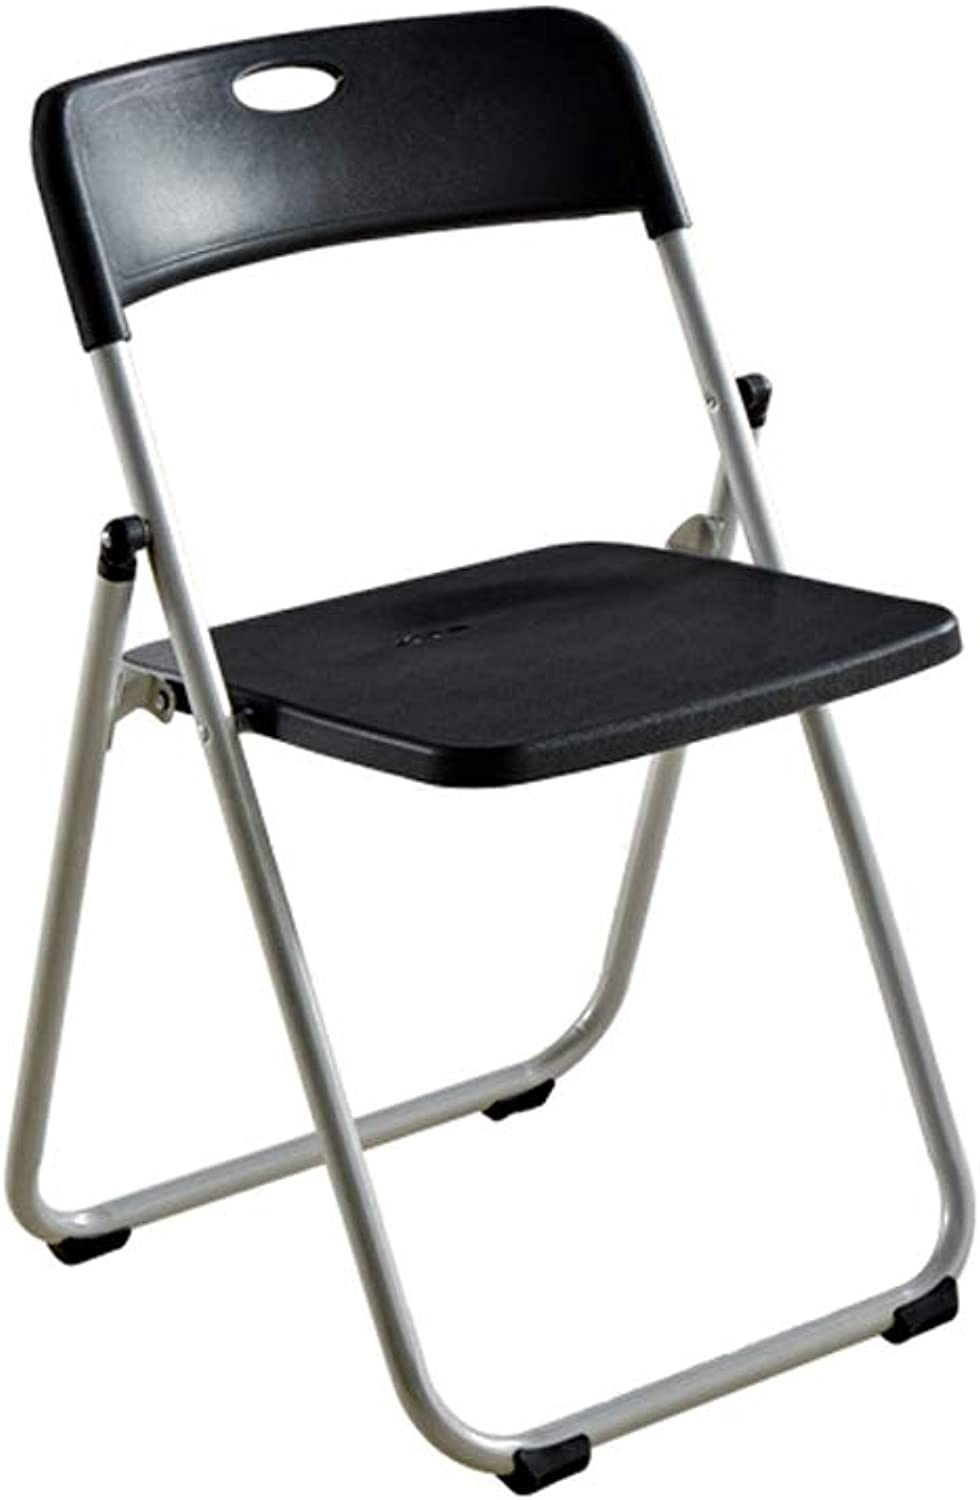 CQ Conference Folding Chair Portable Home Simple Dining Chair Chair Computer Staff Office Training Chair Leisure Seat Stool (color   Black)